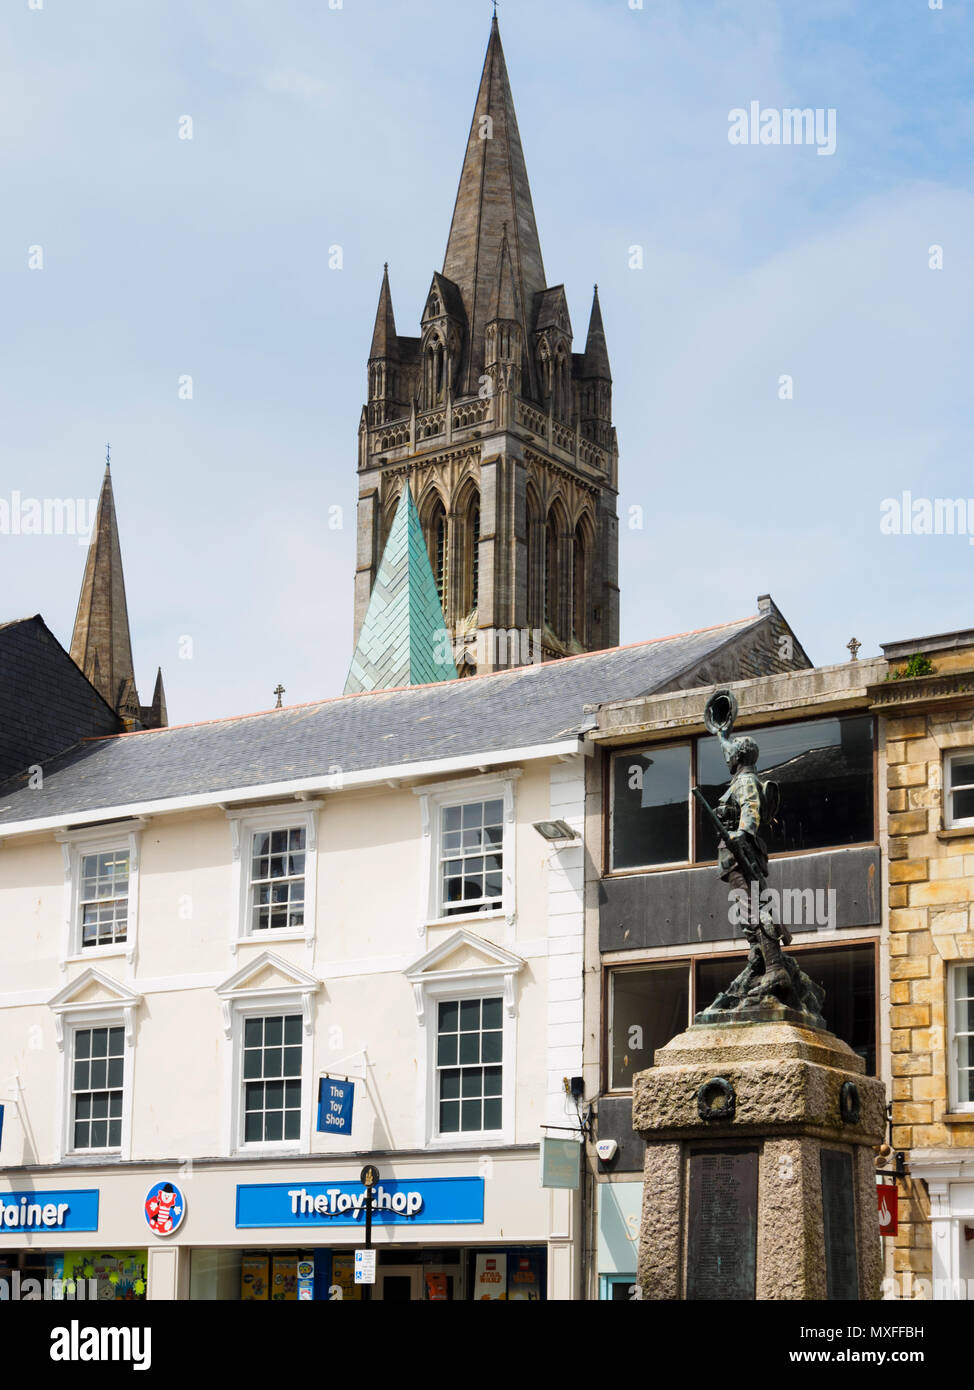 The main and secondary spires of Truro Cathedral dominate the skyline above the war memorial in Boscowan street, Truro, Cornwall, UK - Stock Image